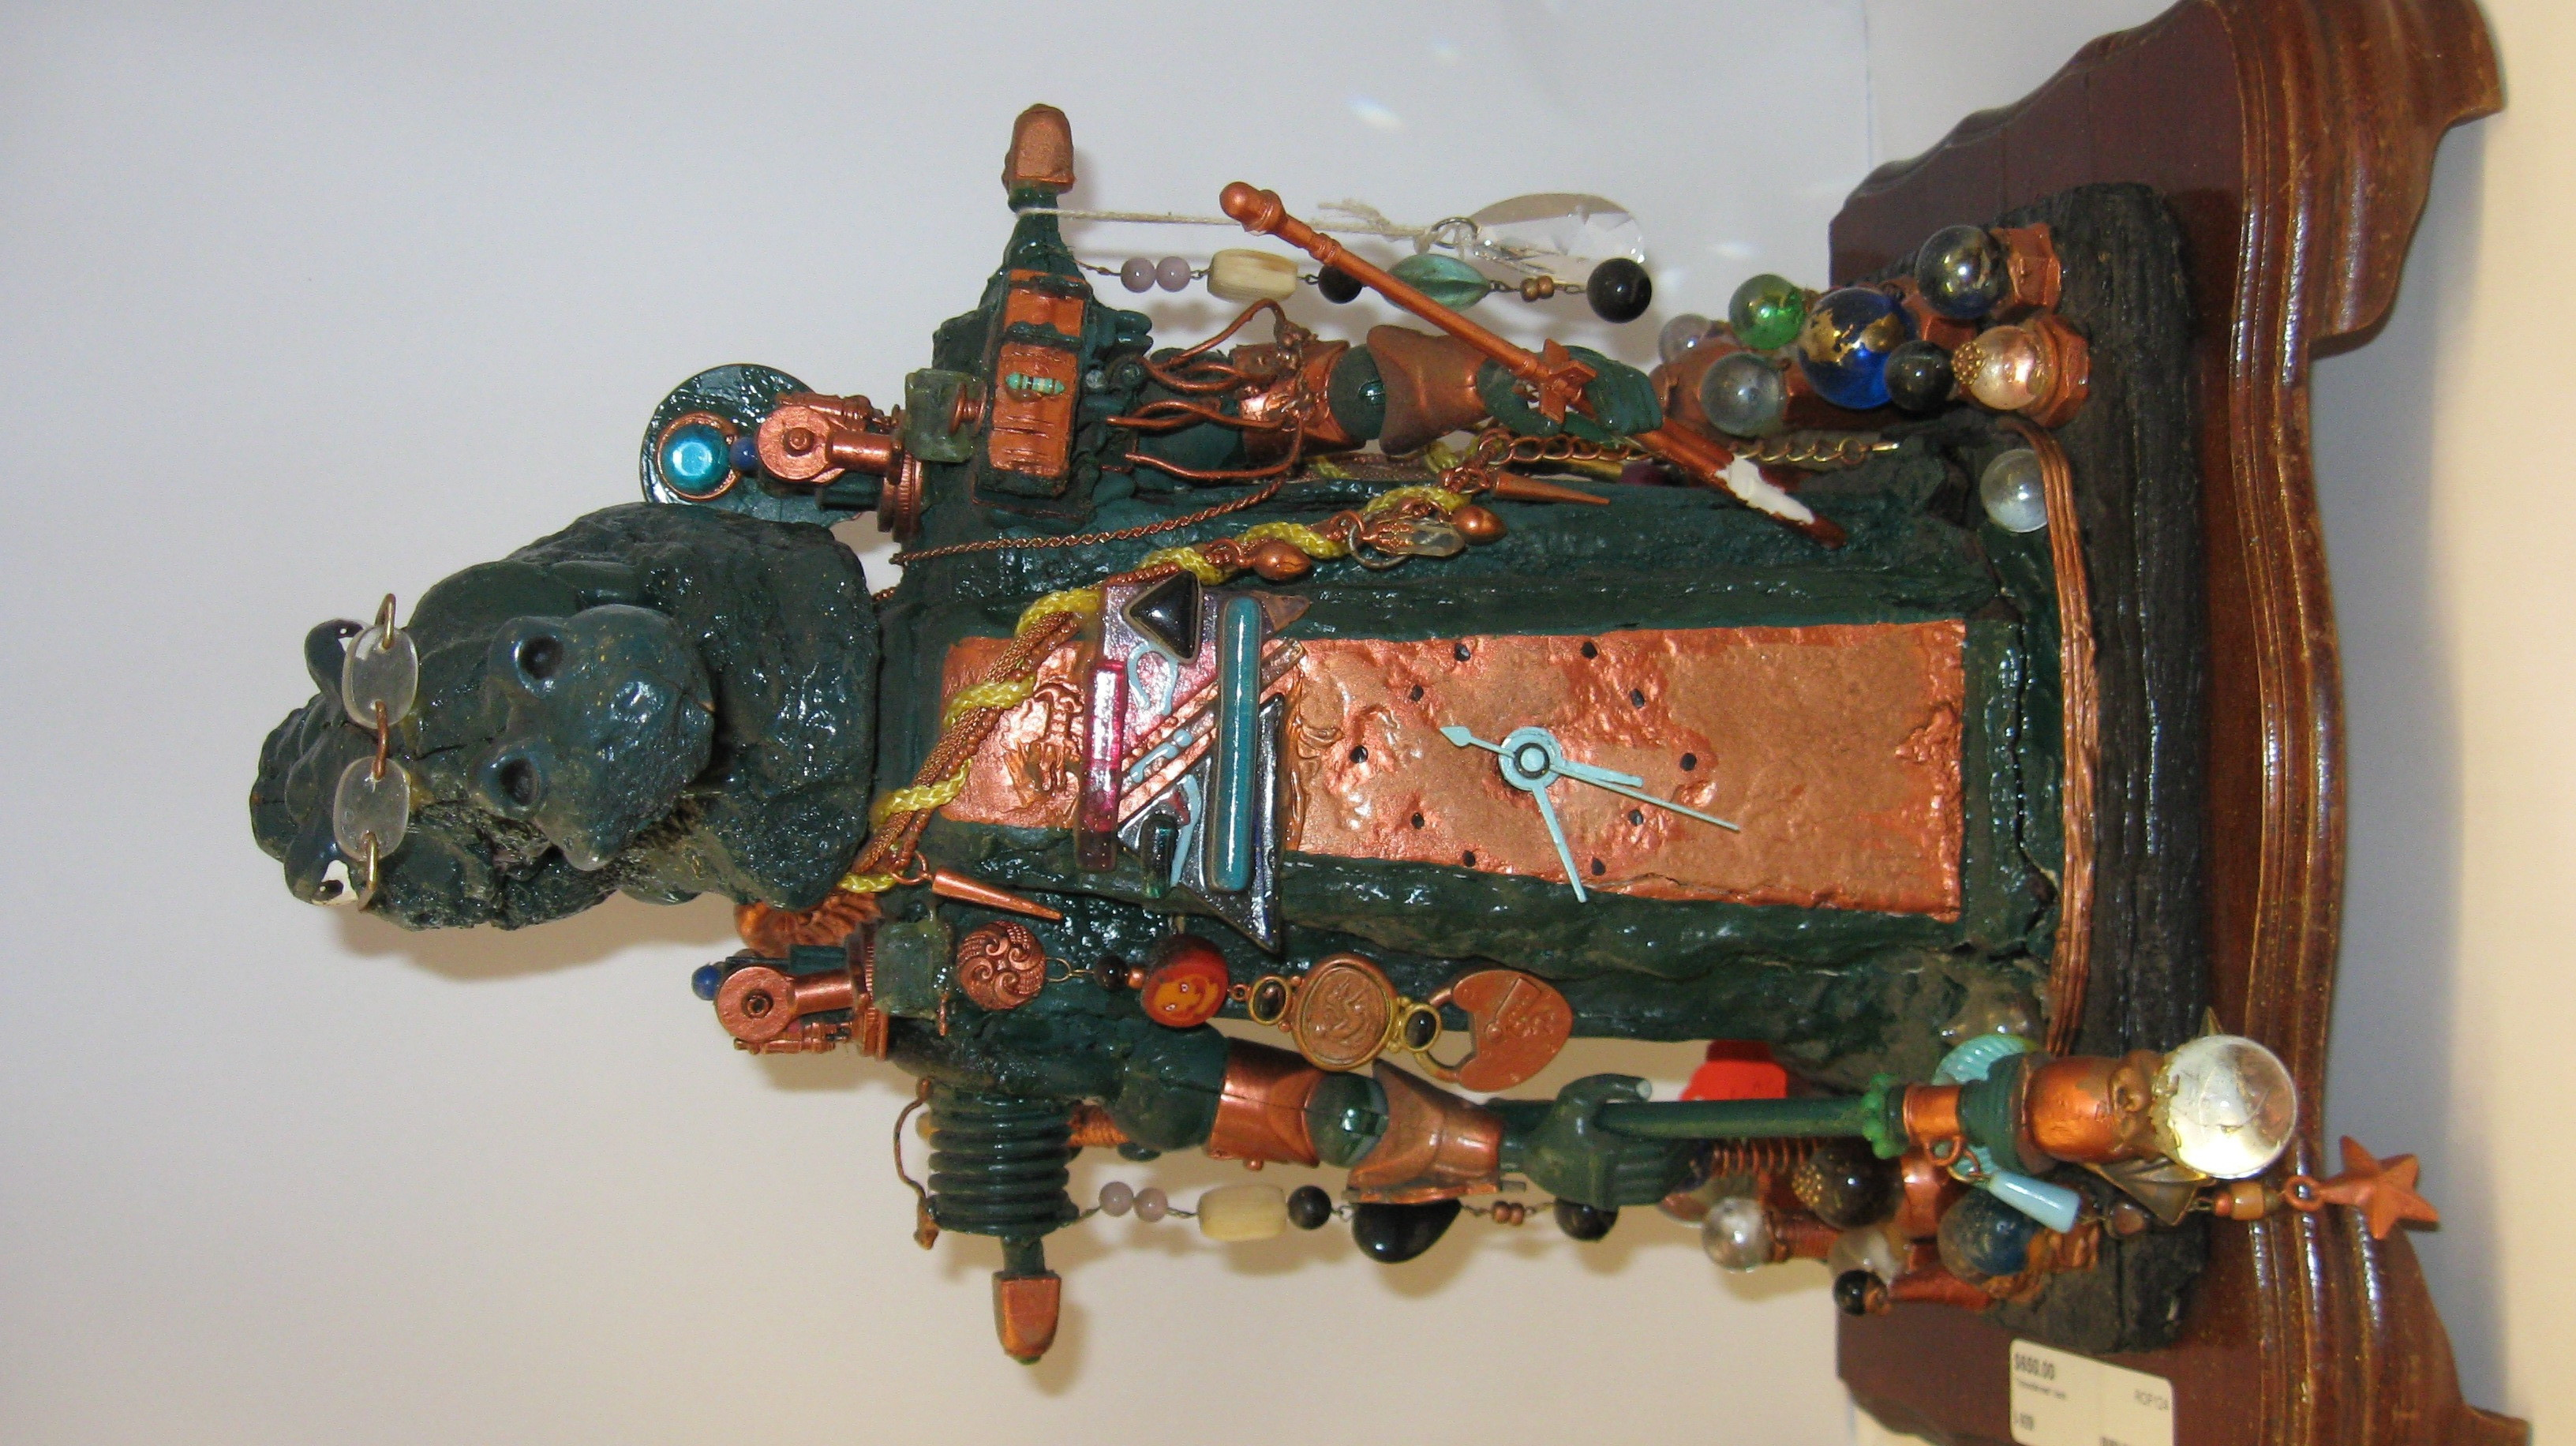 Unique Artistic Crocodile Man Clock Adorned with Charms Trinkets and Marbles